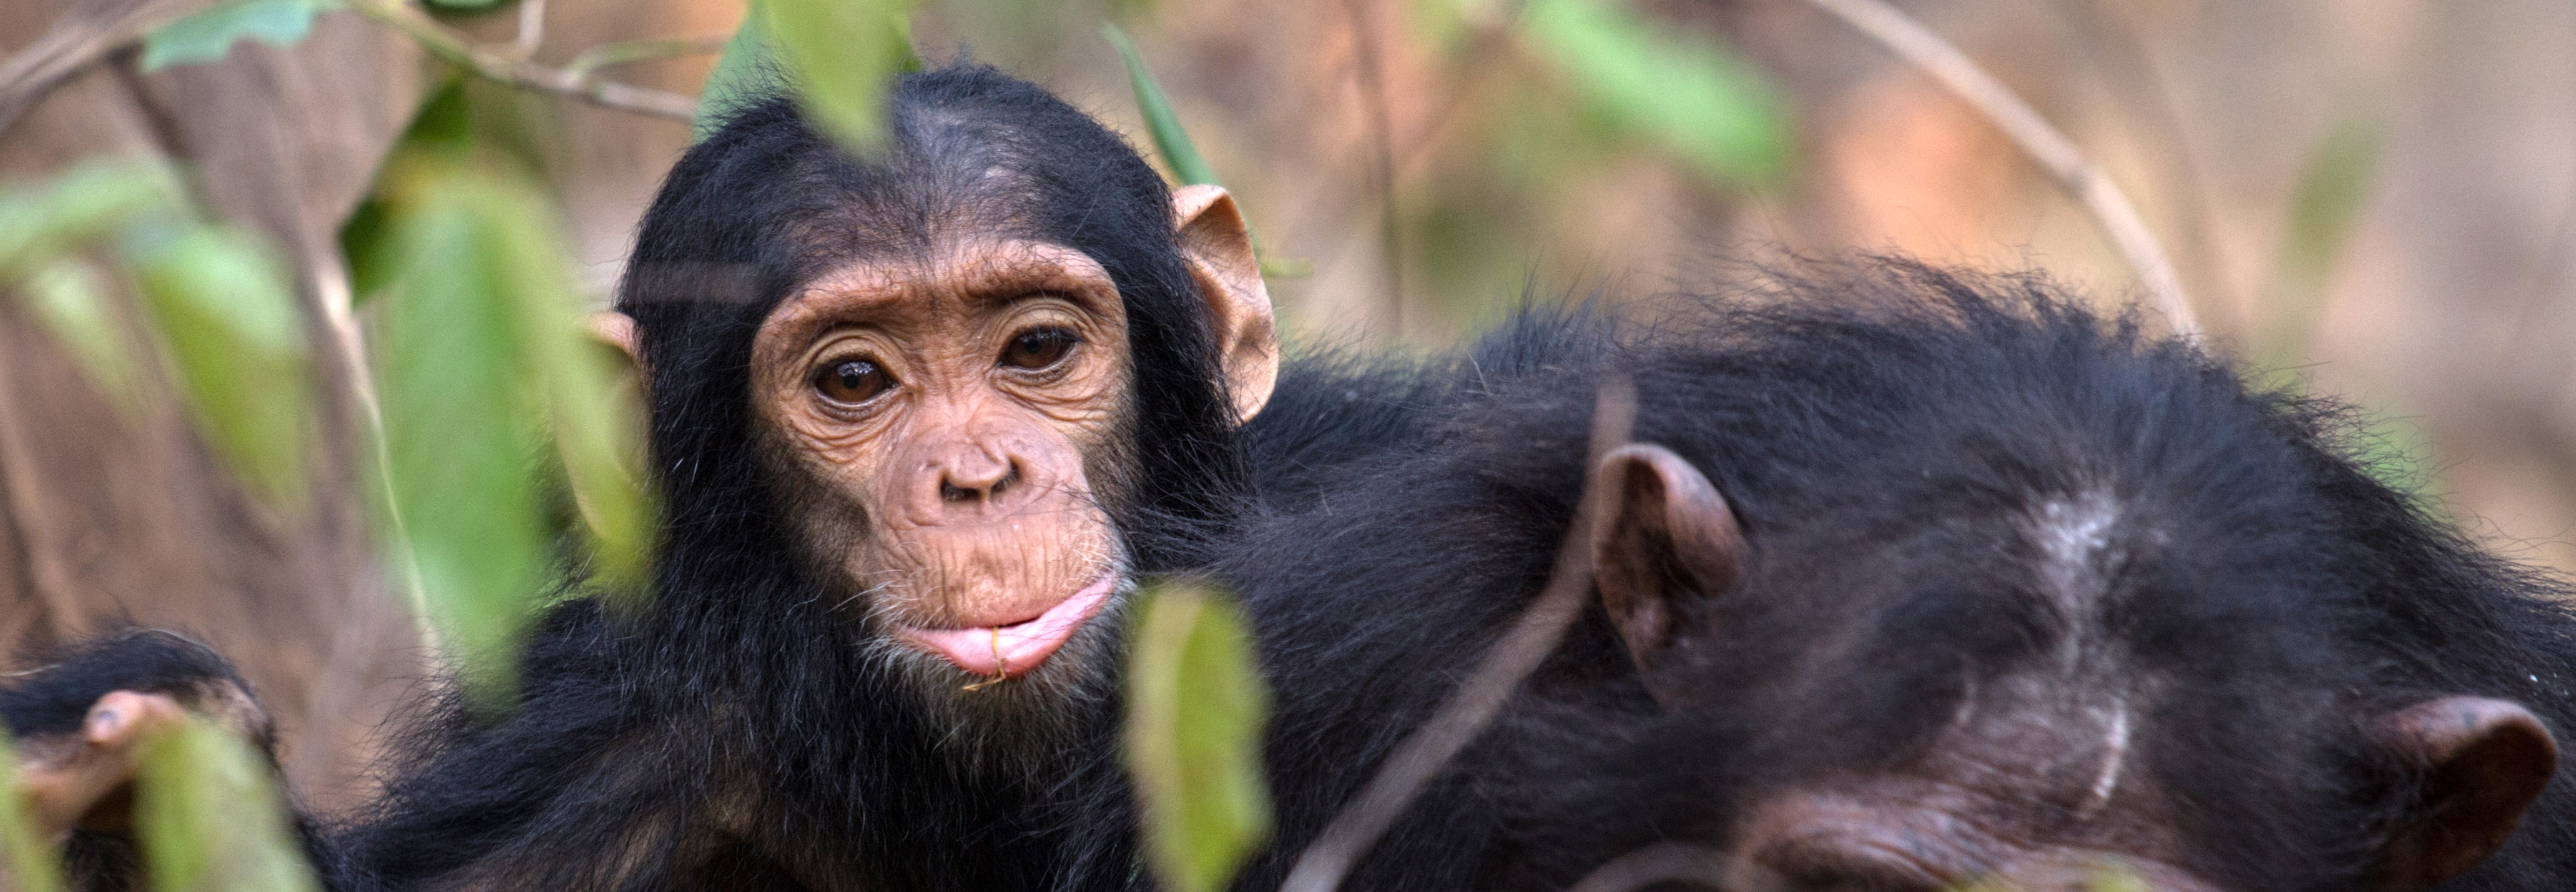 Baby chimpanzee, Gombe National park